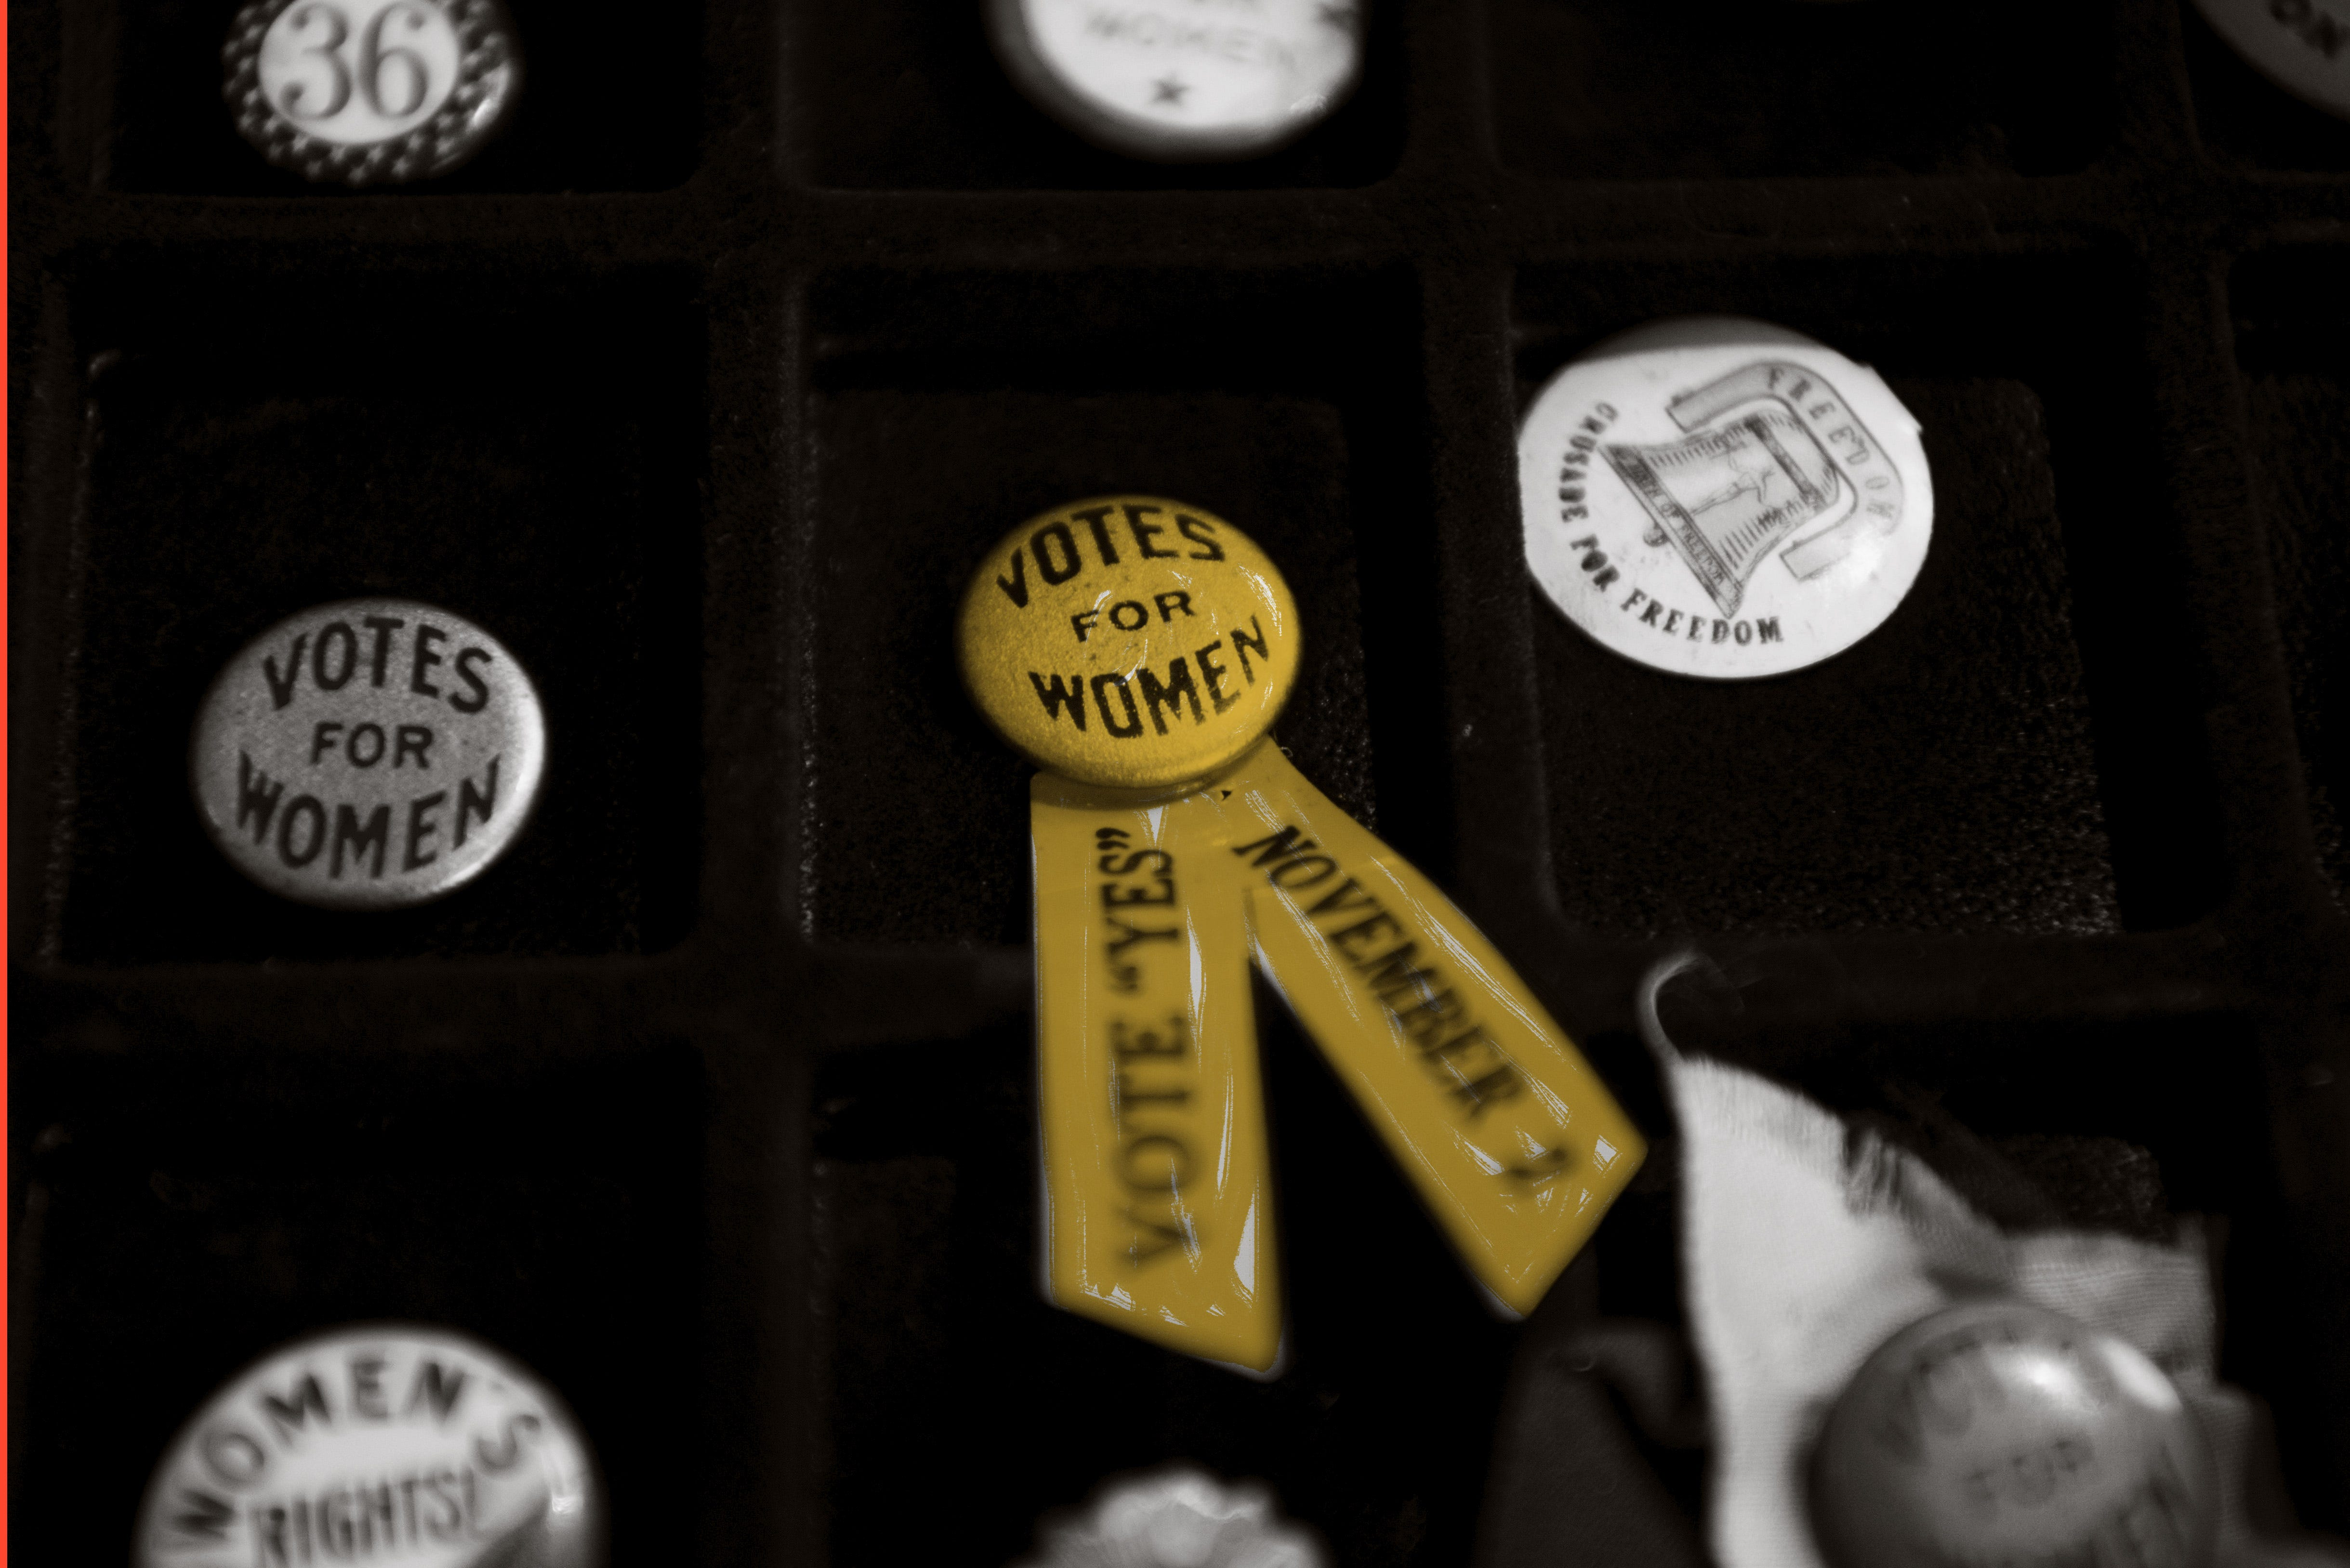 The battle for women's suffrage was long and ugly, but in the end Tennessee became the 36th and final state needed to ratify the 19th Amendment.